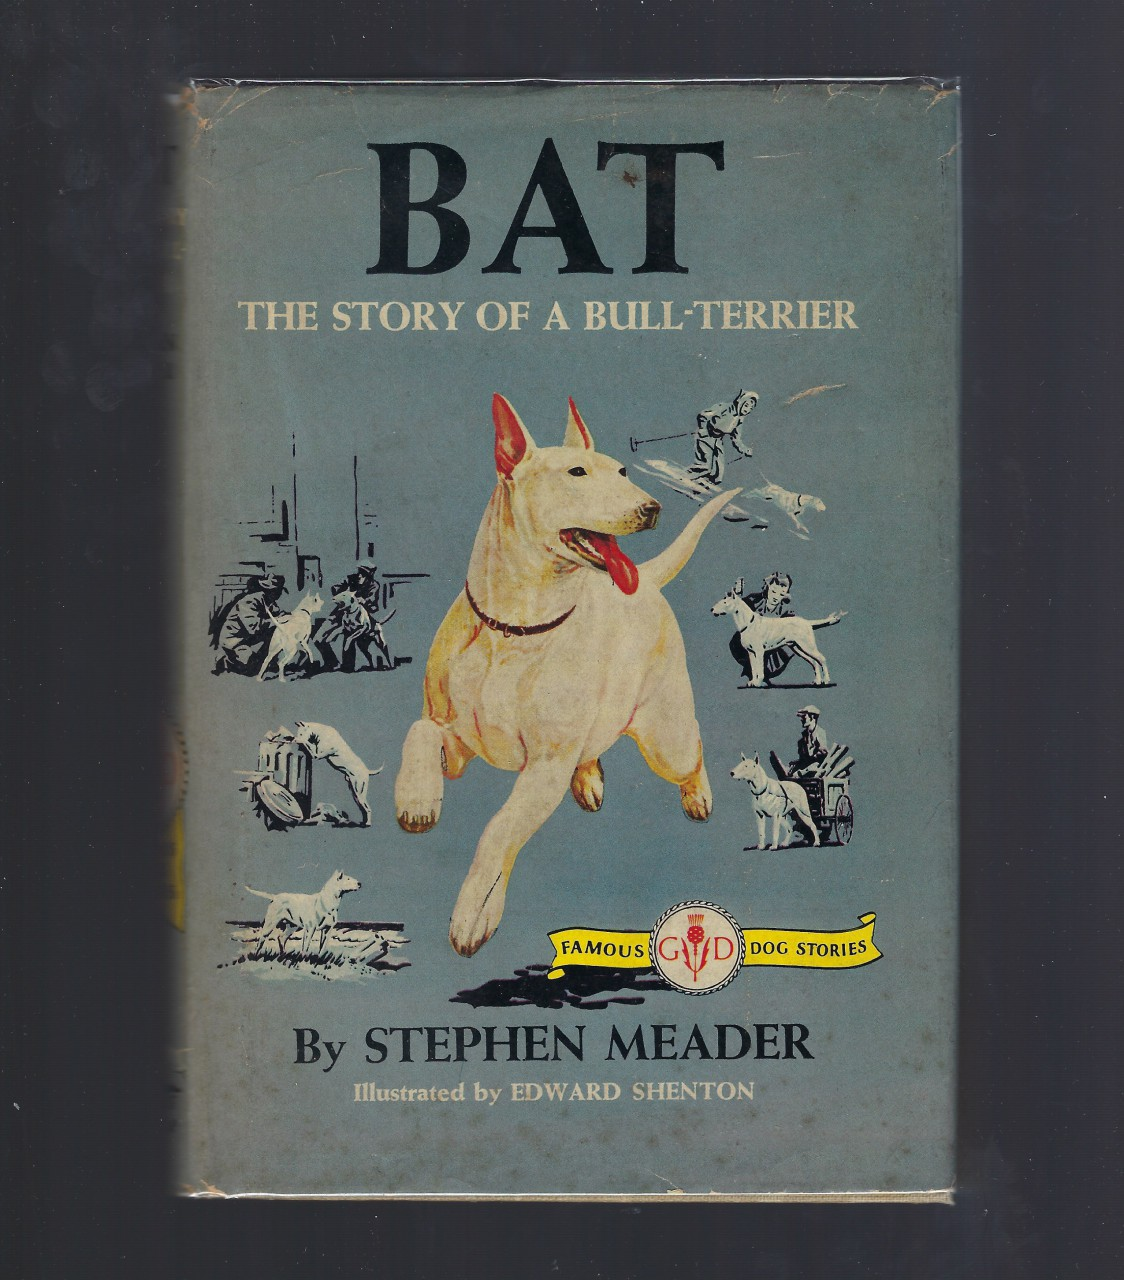 BAT The Story of a Bull Terrier Famous Dog Stories Stephen W. Meader HB/DJ, Stephen W. Meader